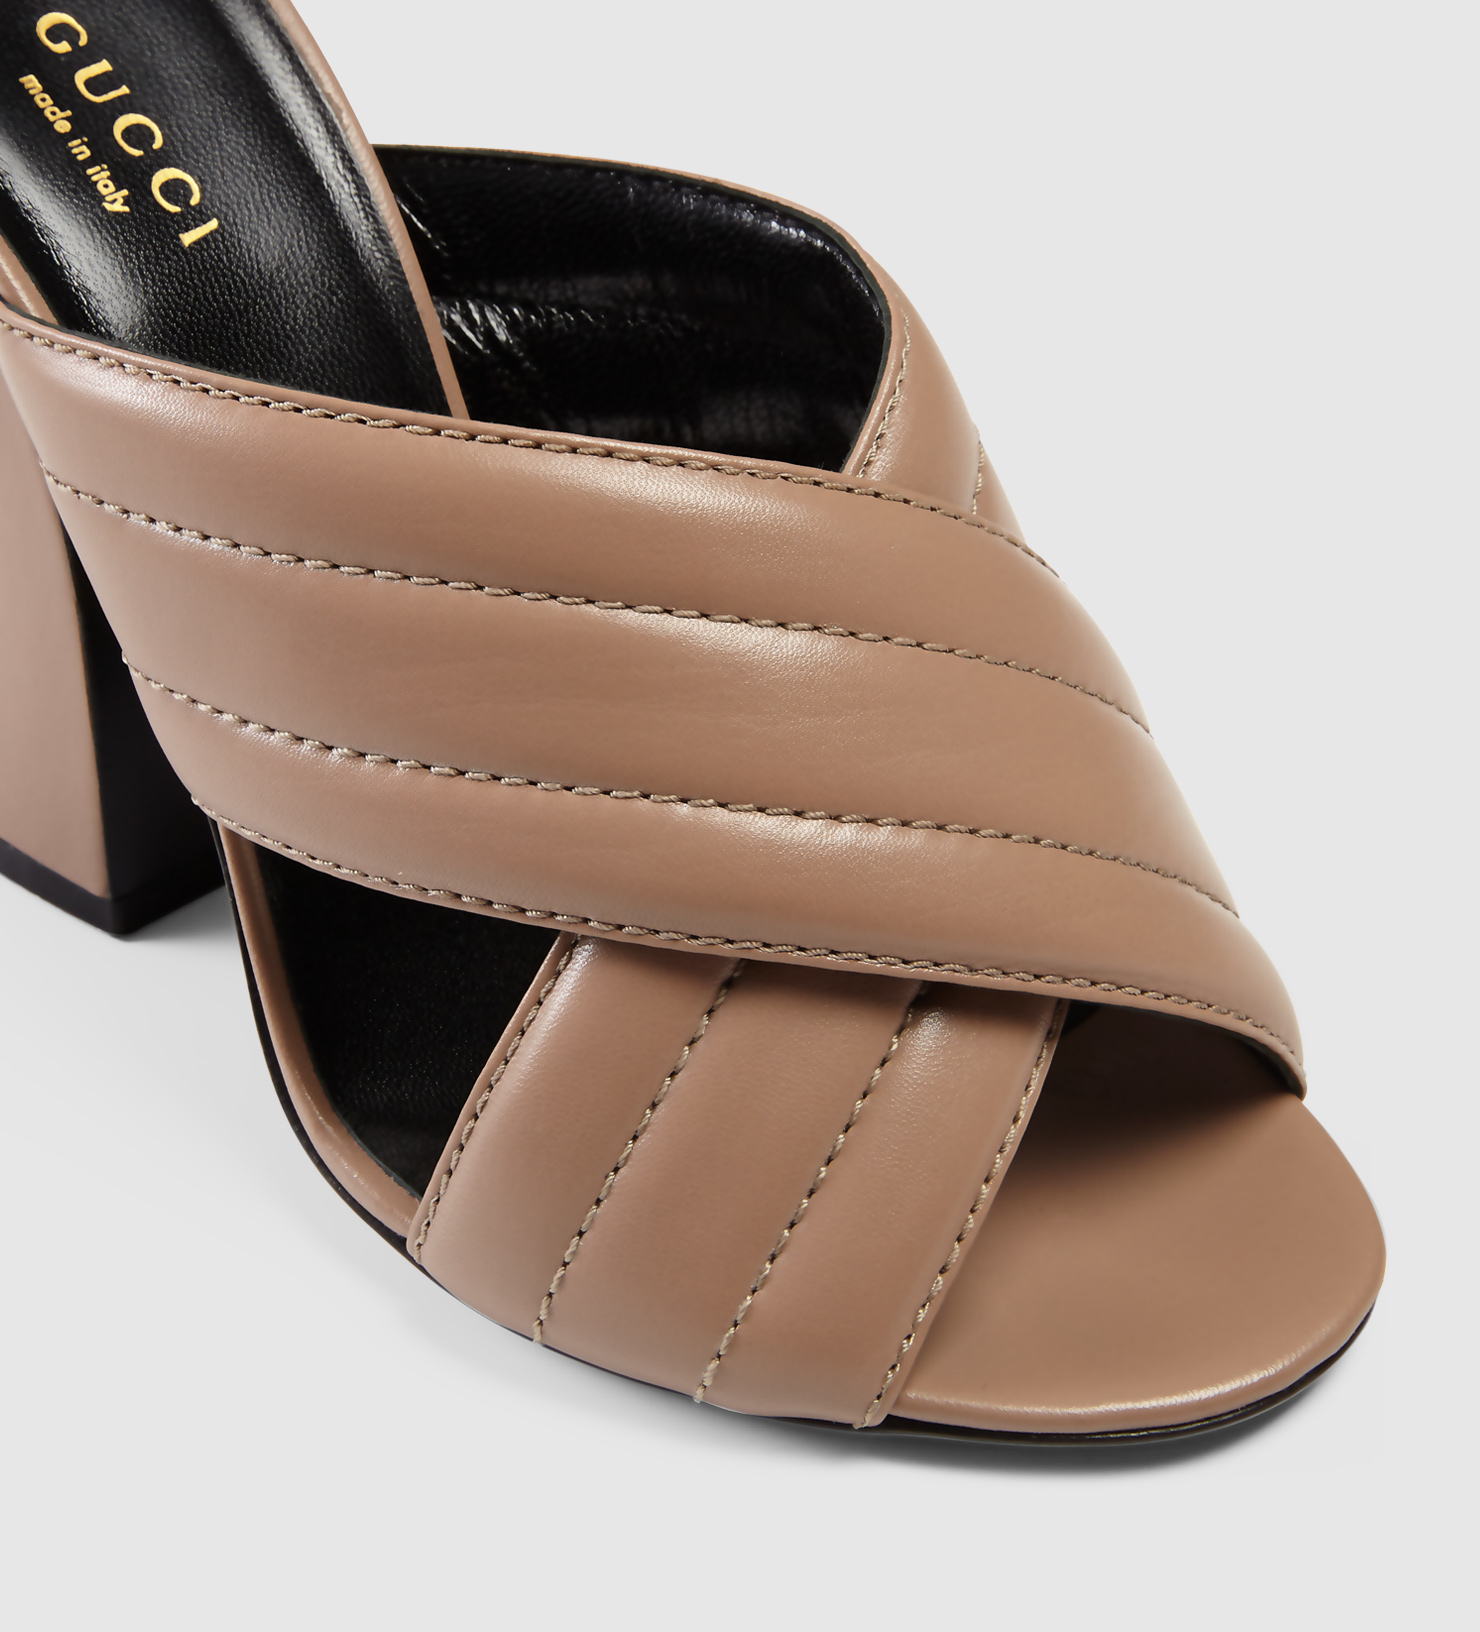 01e59acbaa70 Lyst - Gucci Leather Crossover Sandal in Brown